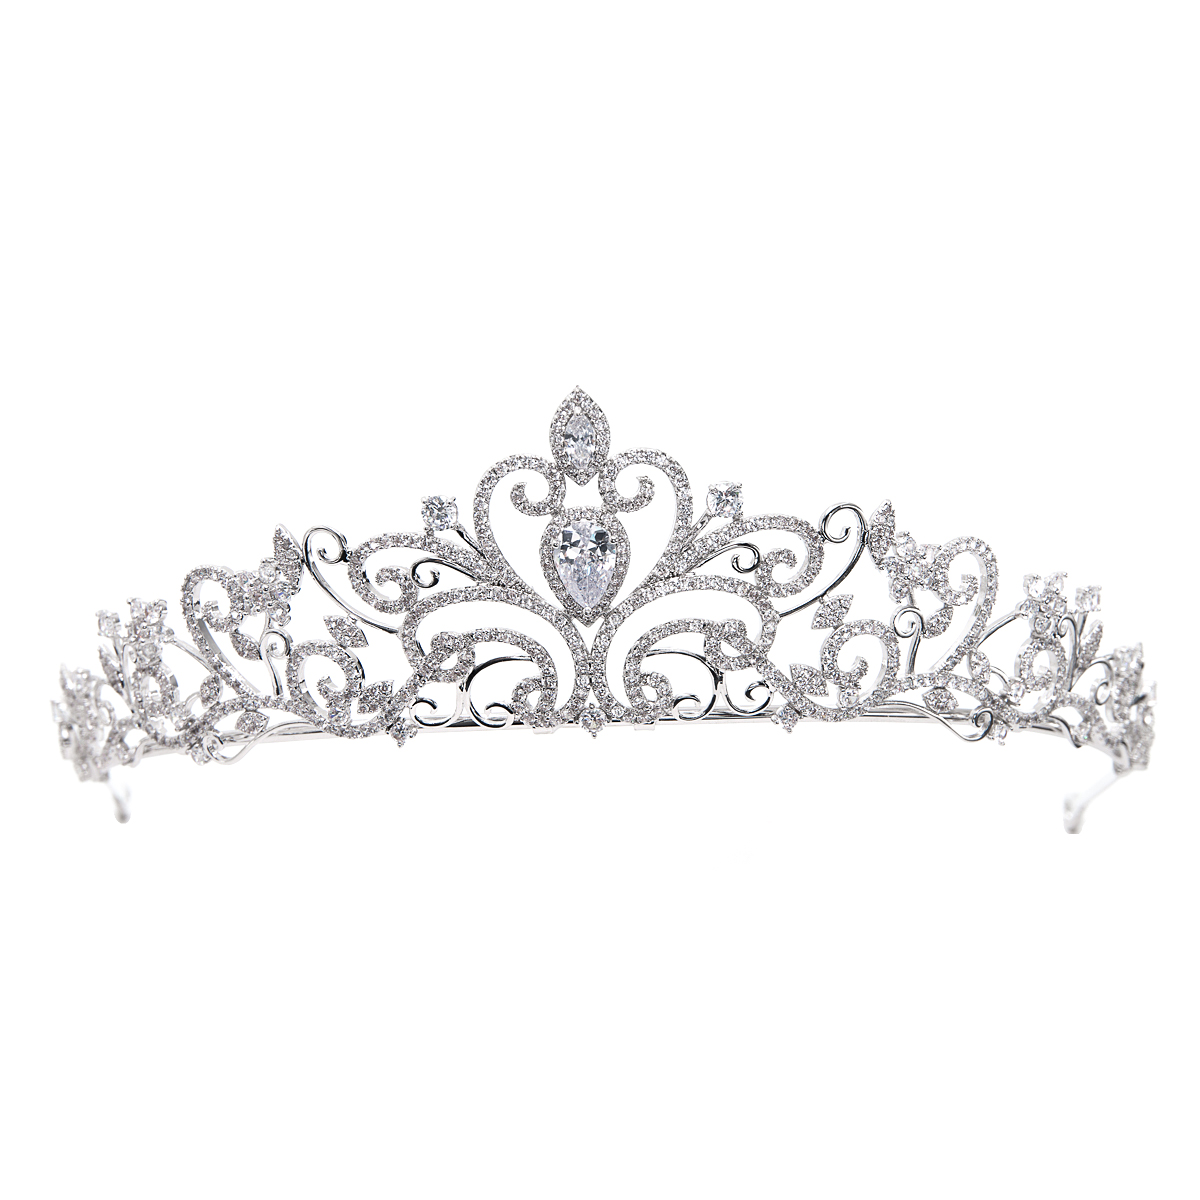 Gorgeous Wedding tiara Full AAA CZ Cubic Zirconia Crowns Pageant Hair Accessories Jewelry Birthday Party Headpiece